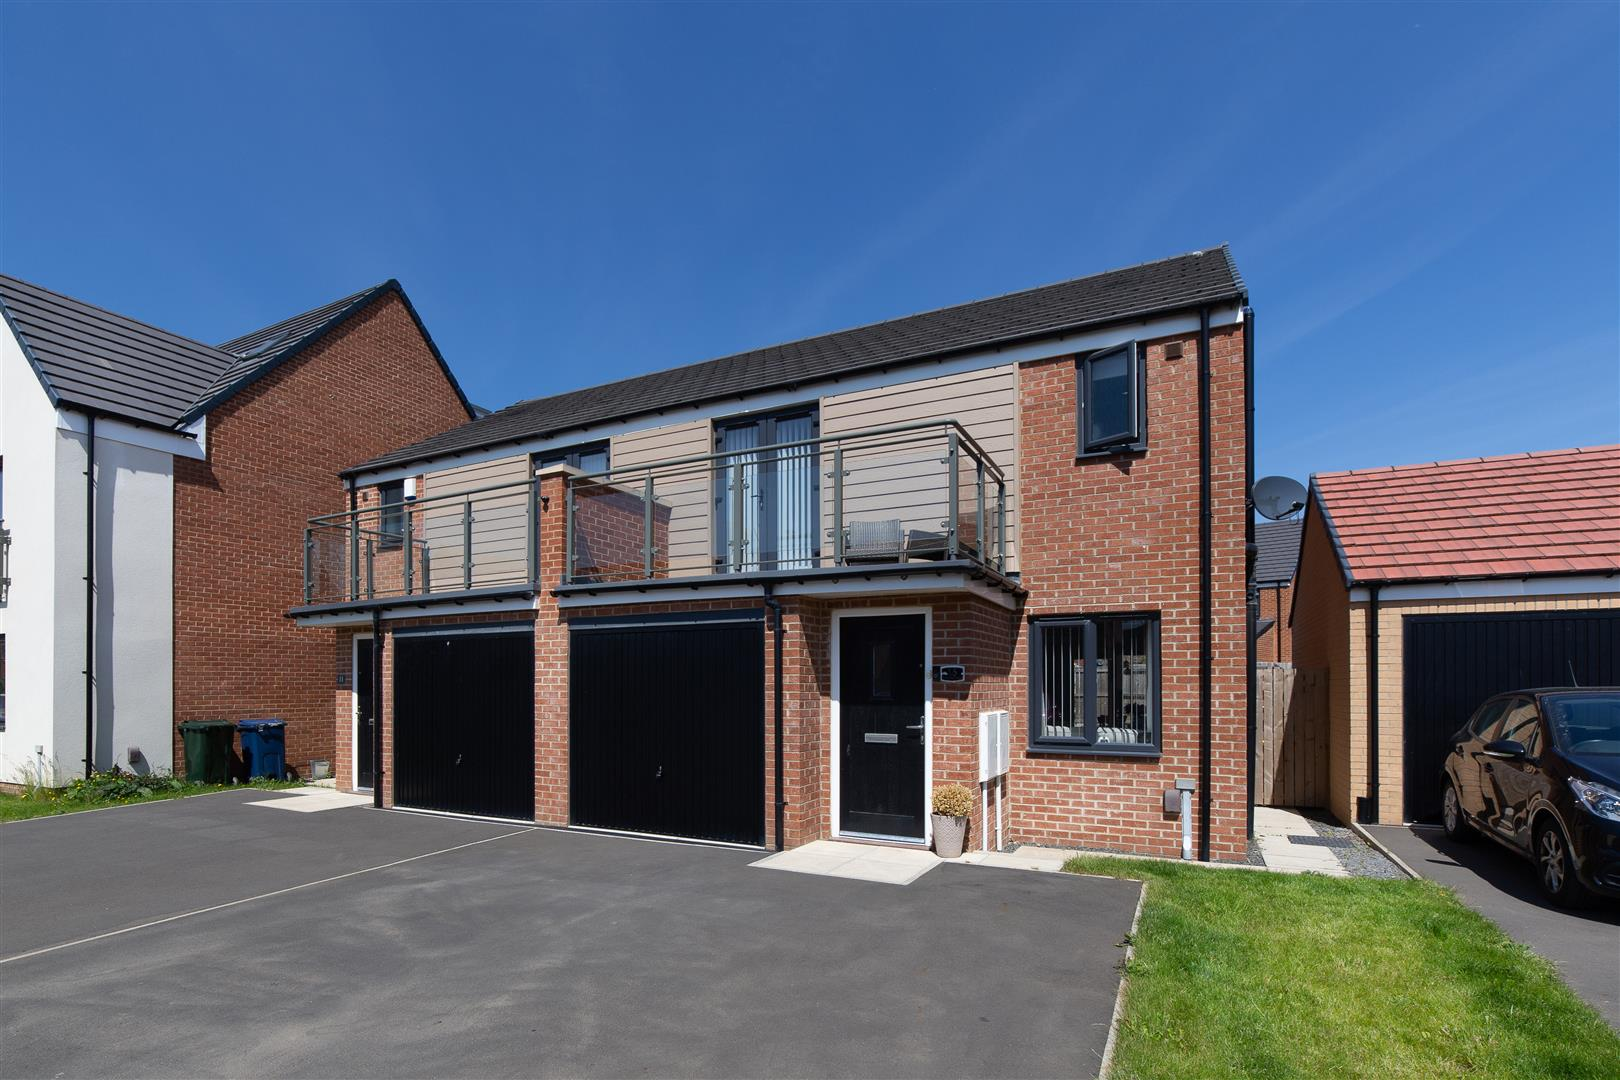 3 bed semi-detached house for sale in Willowbay Drive, Great Park, NE13